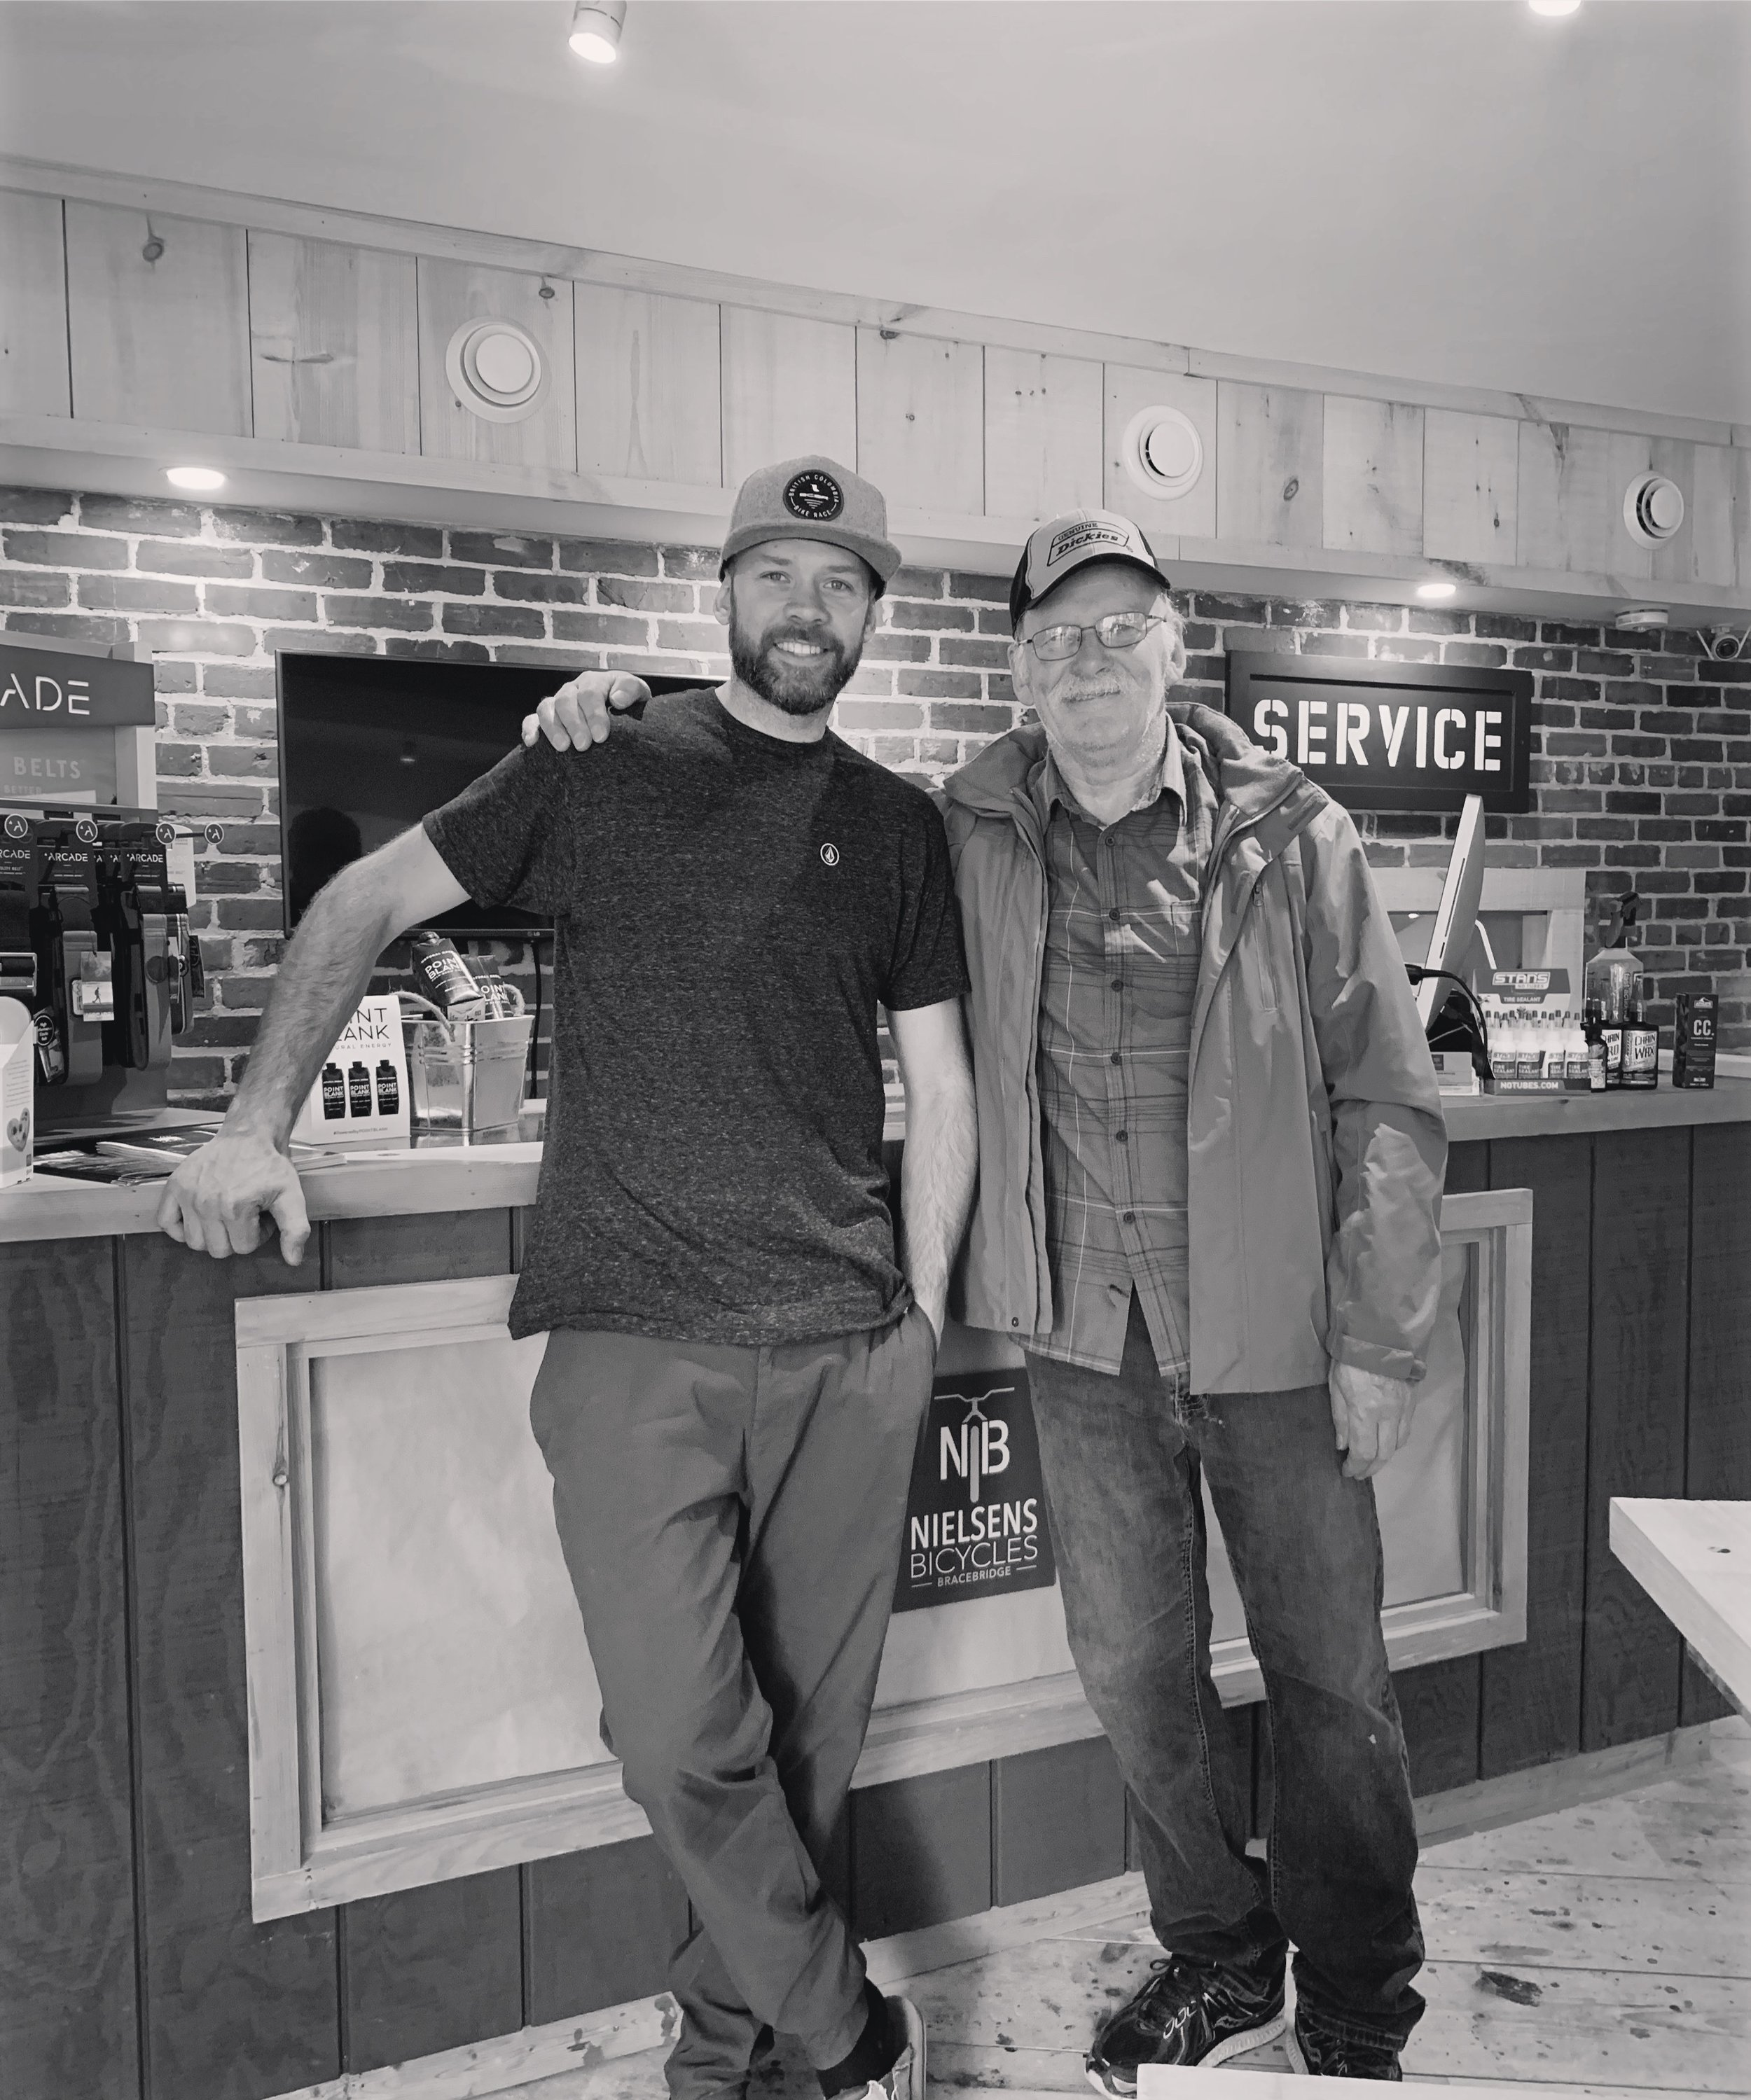 Nielsens Bicycles May 2019. - Years later, 43 Dominion Street became available for lease again. Nielsens Bicycles re-opened in 2019. Proud Dad, Kurt on opening day of Matt's shop at 43 Dominion on May 13, 2019. Same sales counter, to boot.